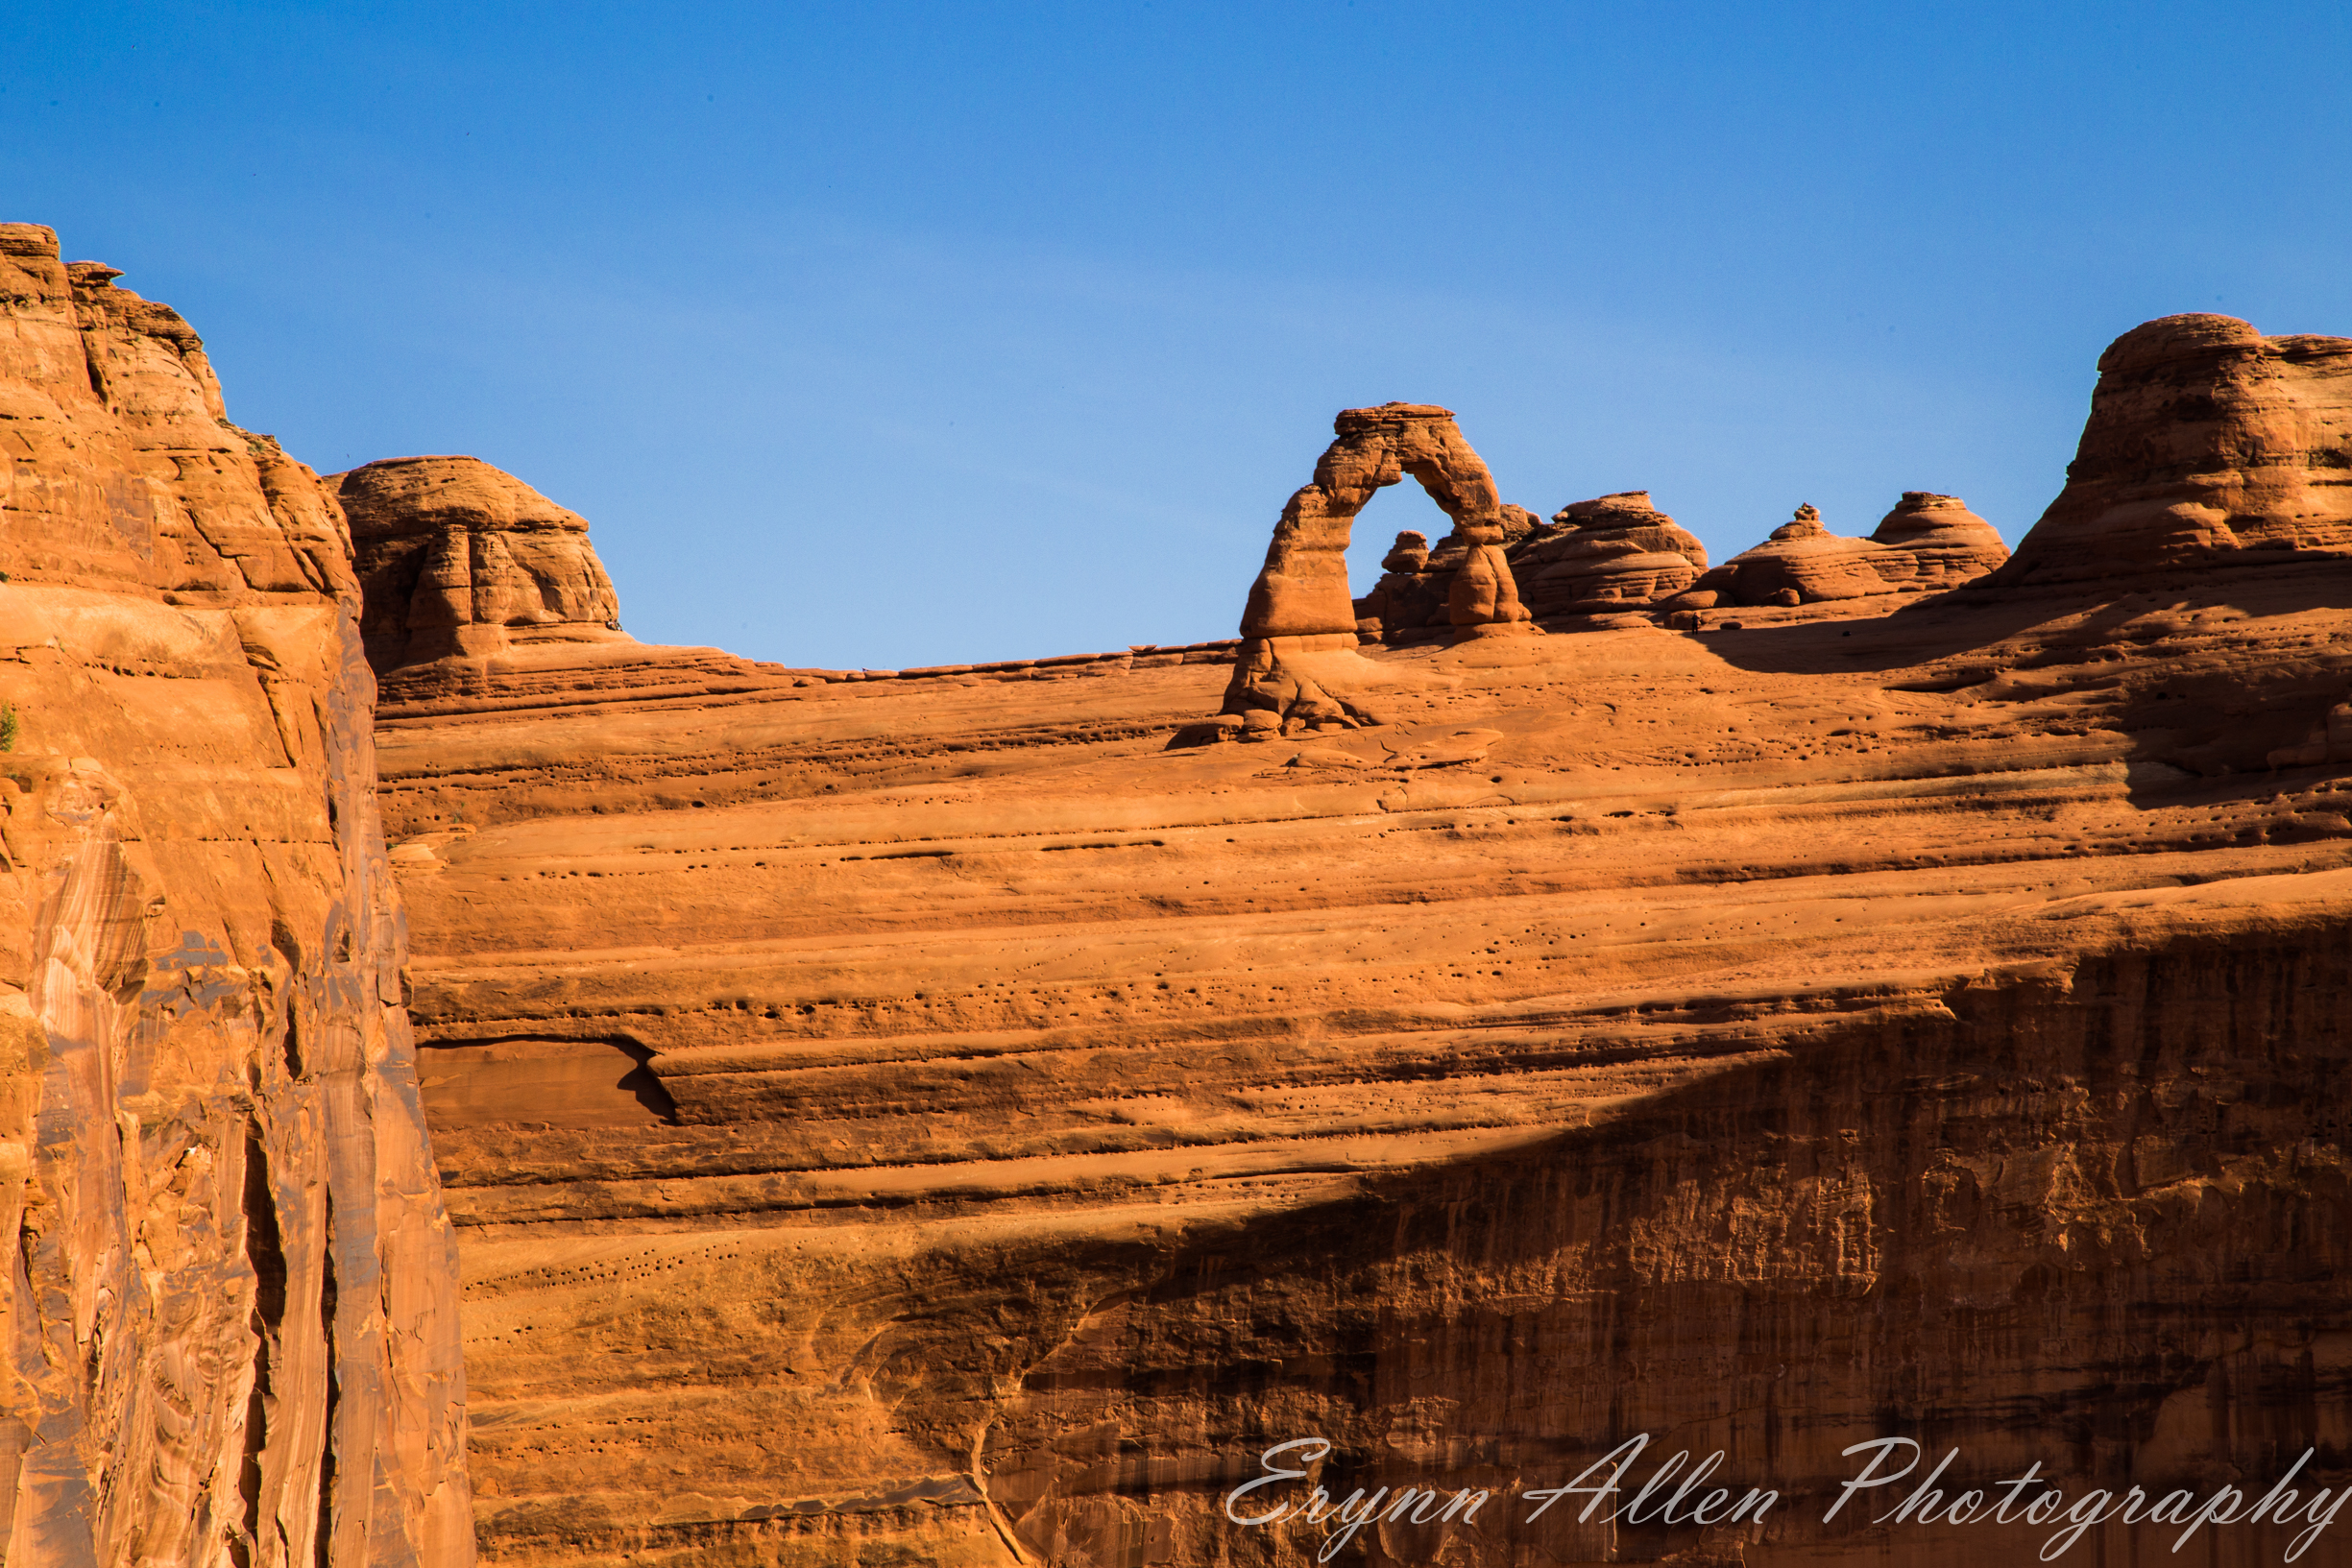 Delicate Arch at a distance from Upper Viewpoint. There are thirteen people cloned out of this image.